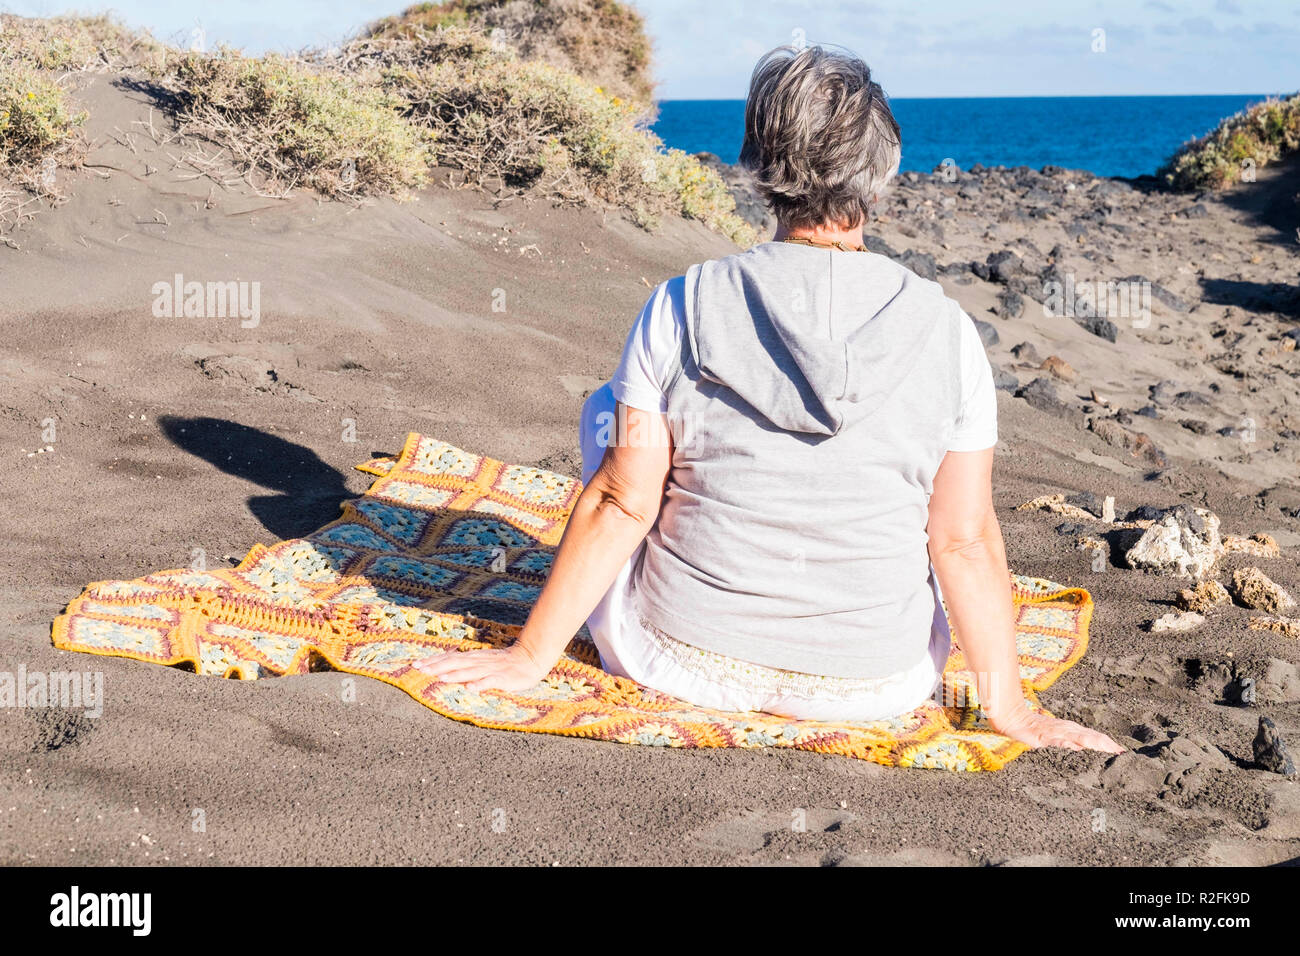 white hair old senior woman sit down and rest near the ocean. outdoor and natural place with blue sky and water - Stock Image